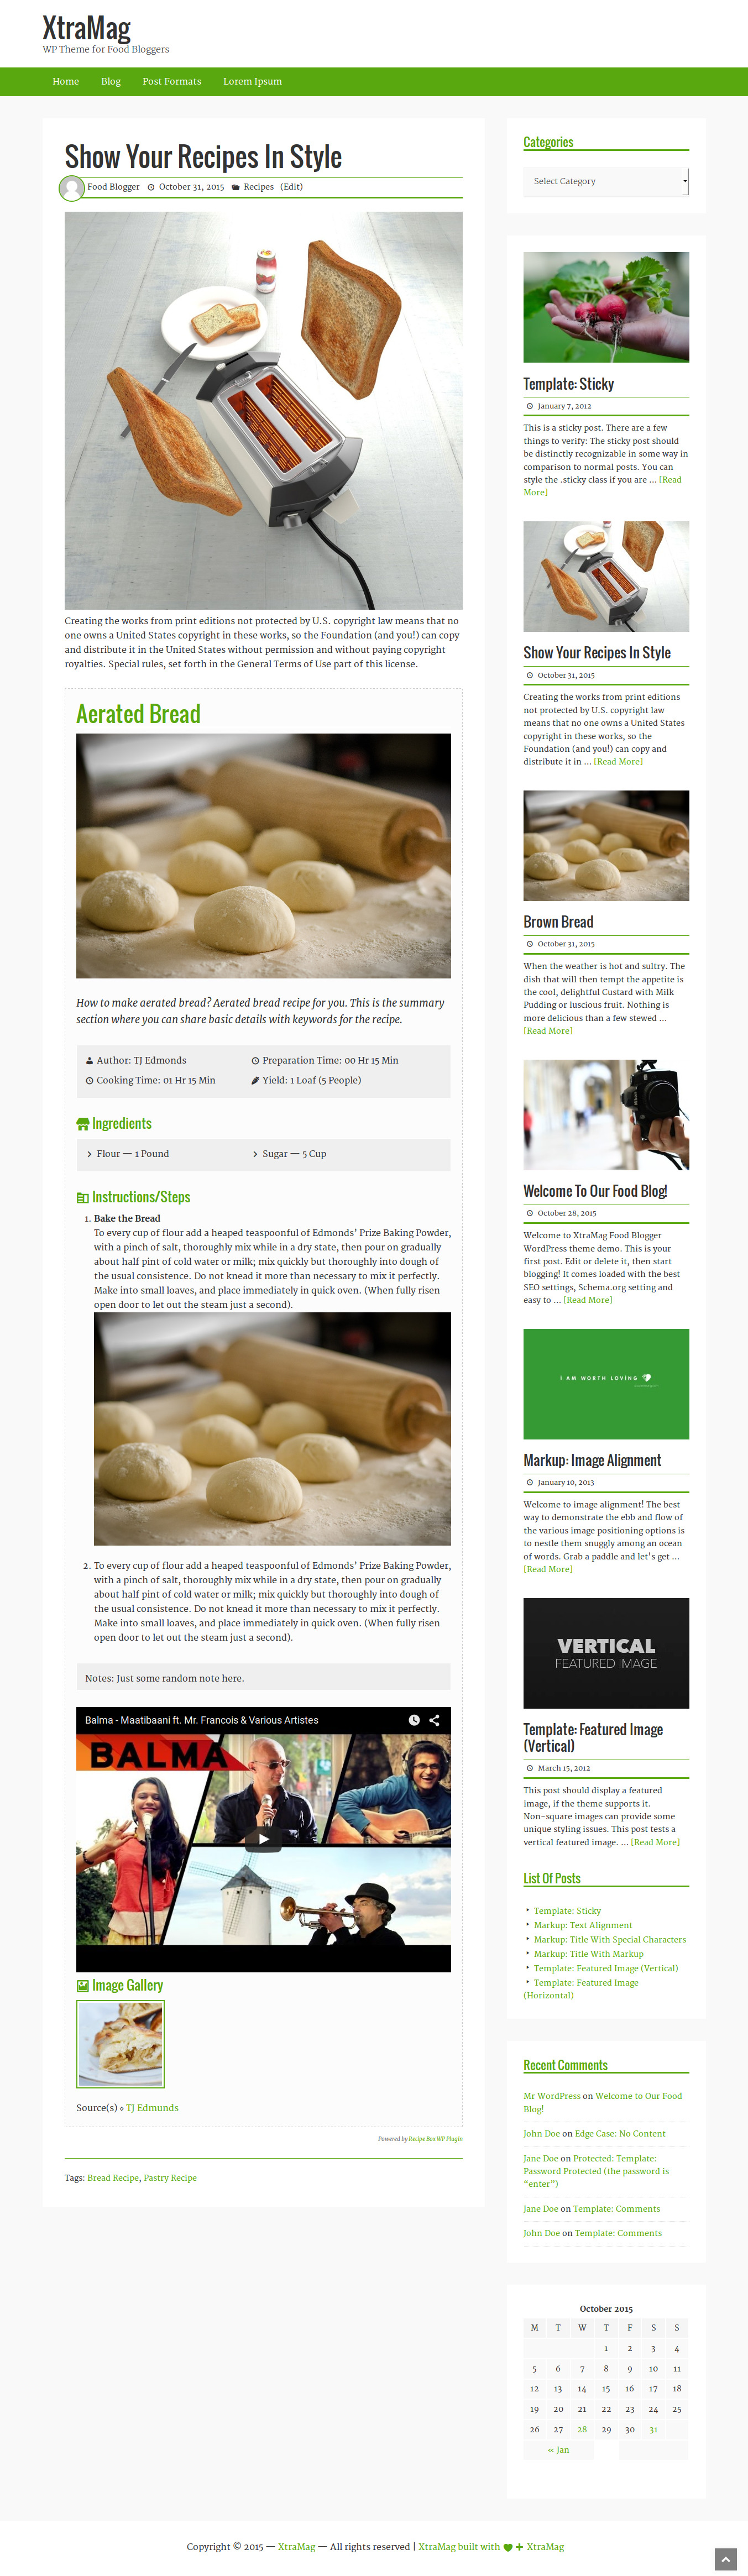 XtraMag-Food-Blogging-WP-Theme-14